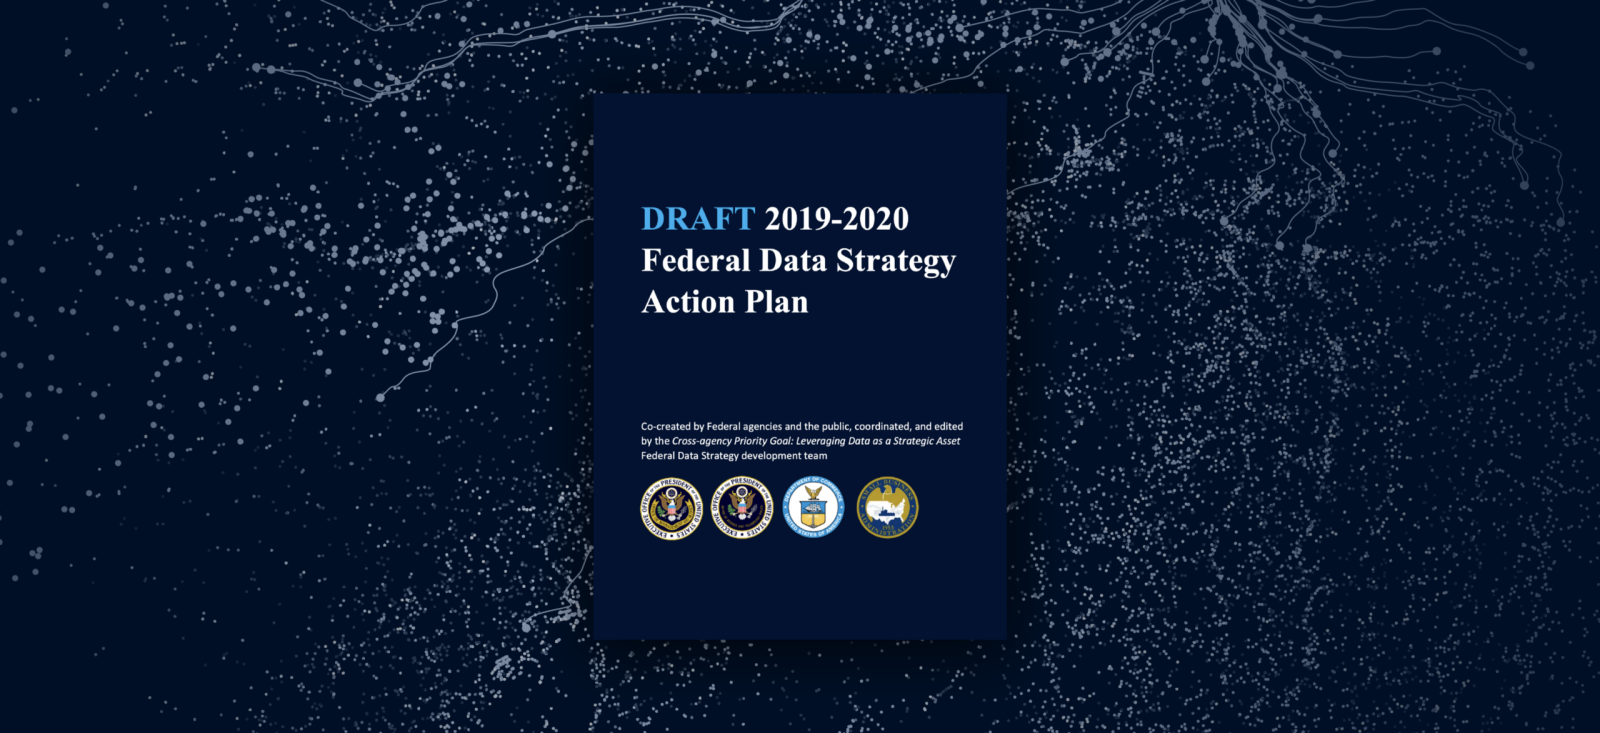 Comments On The Federal Data Strategy Action Plan